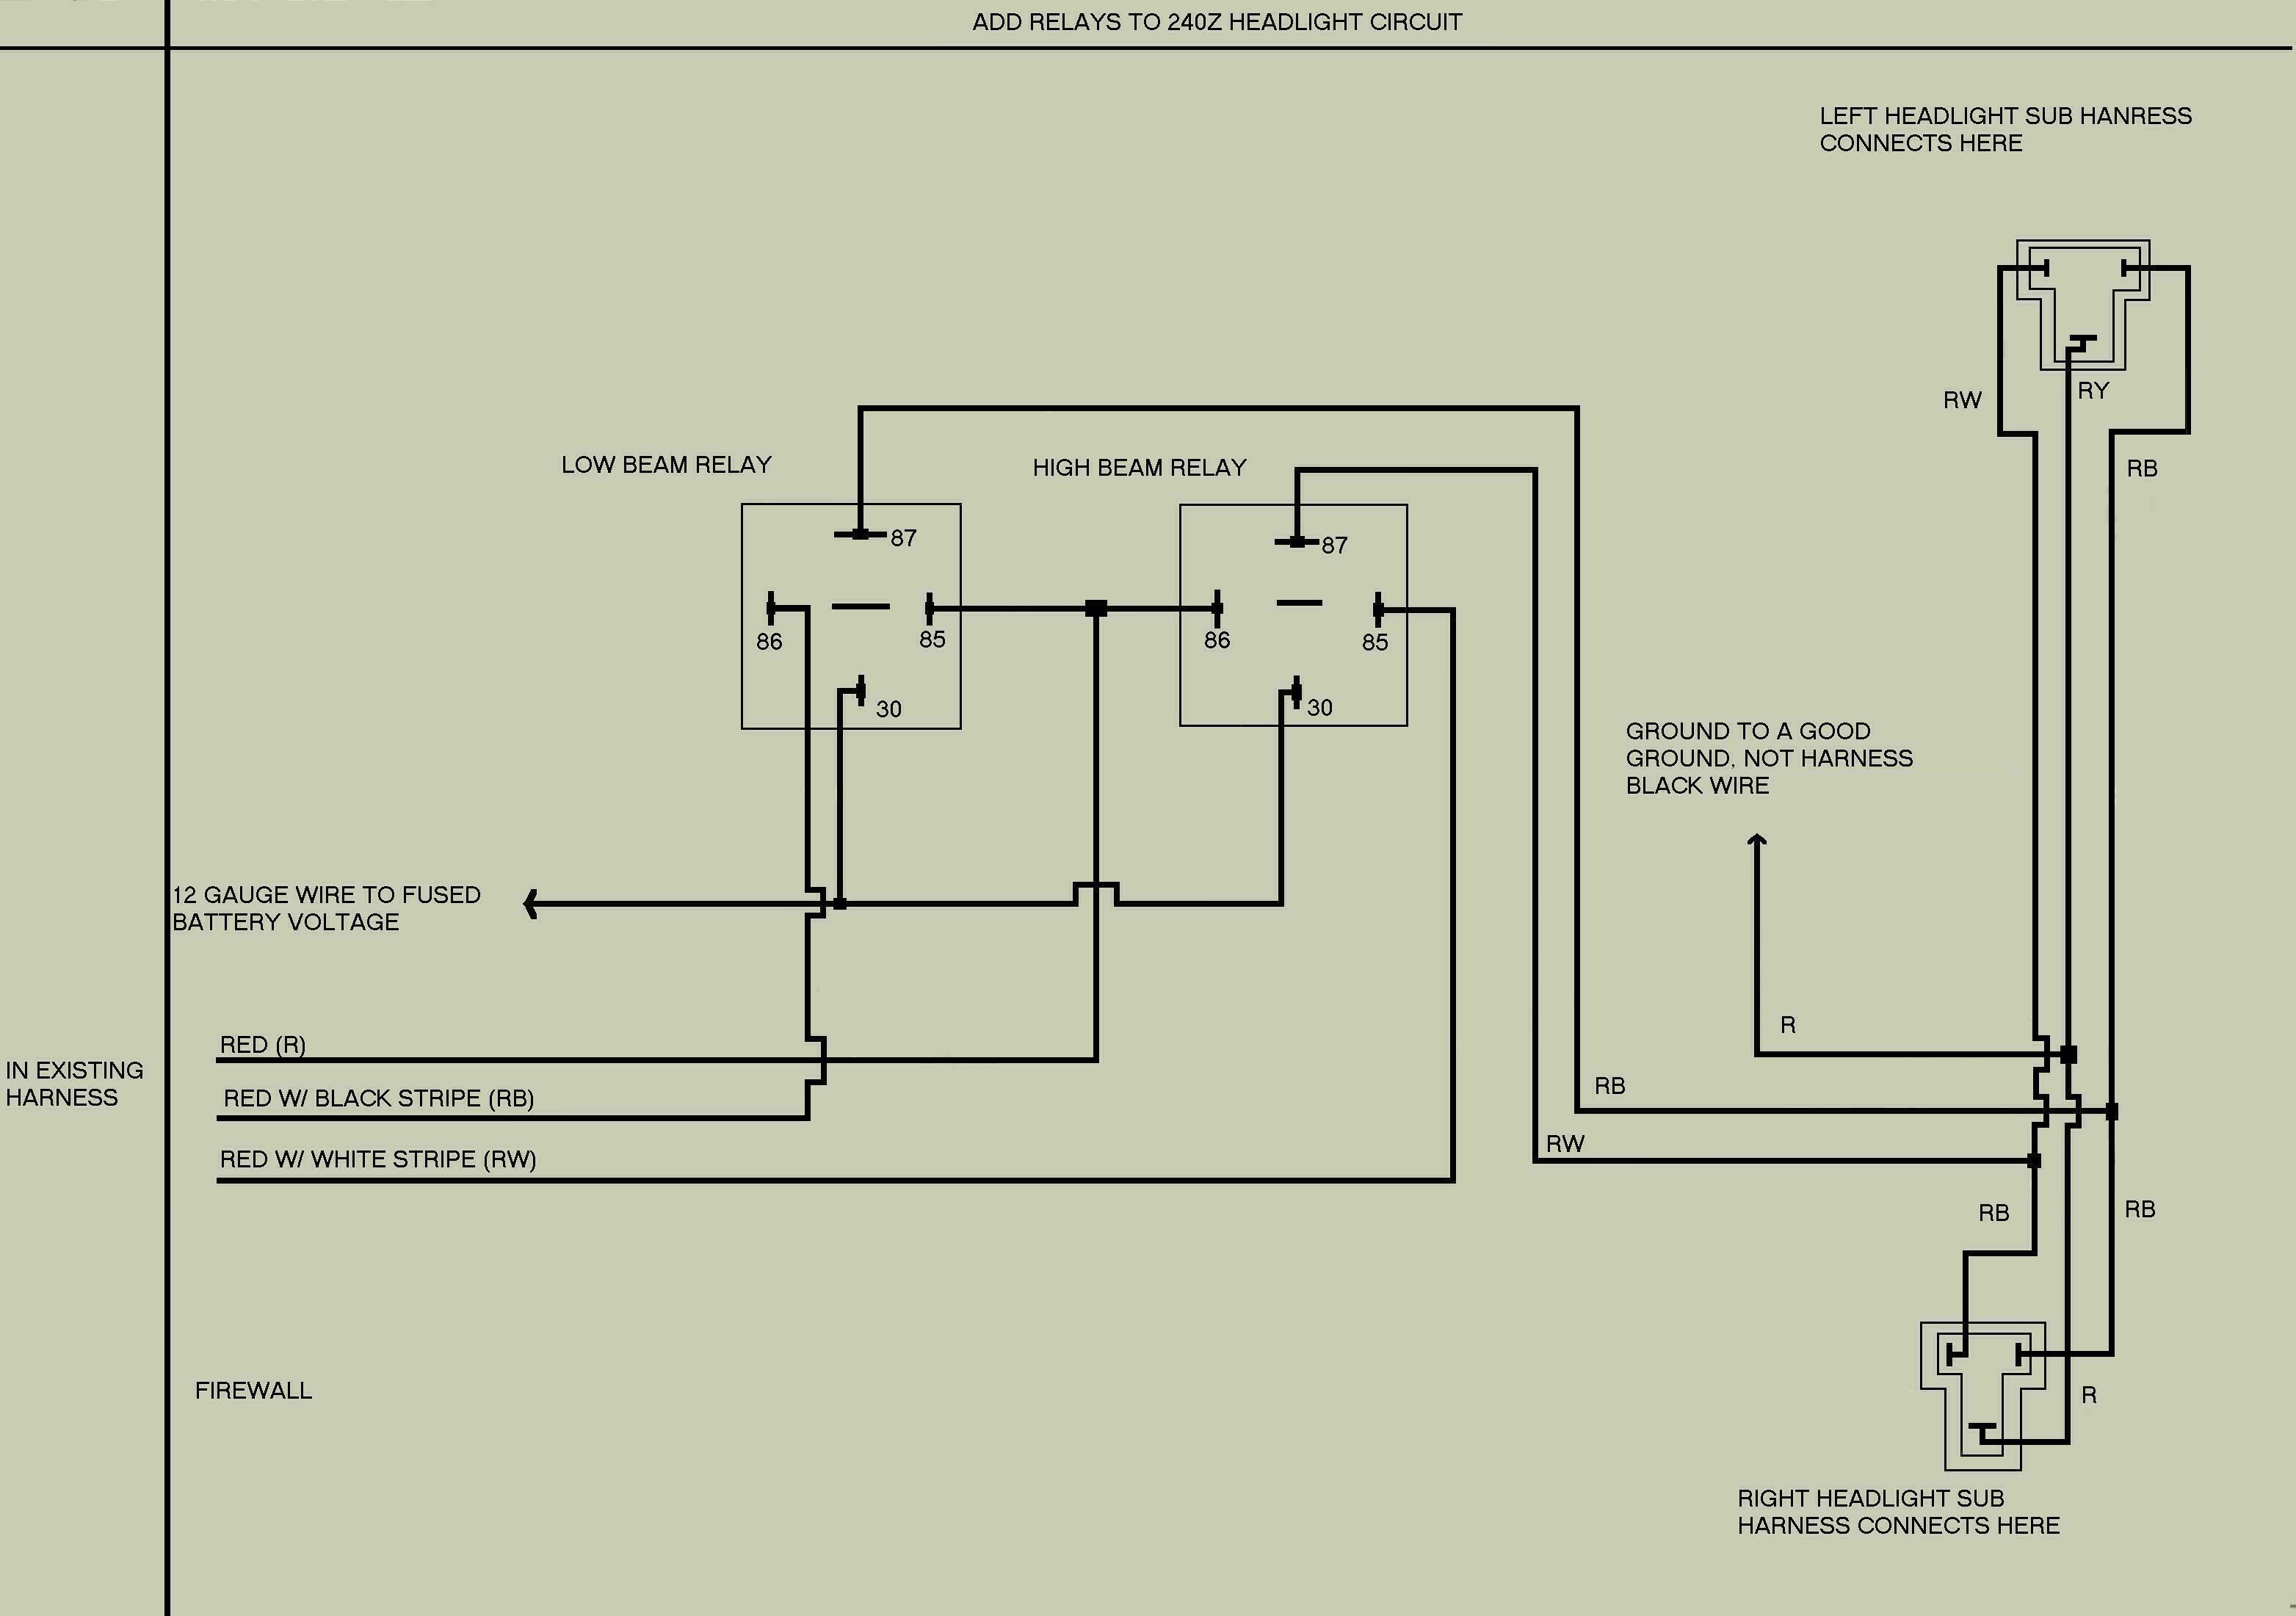 Headlight_Relay_Diagram 240z headlight relay mod 280z headlight wiring diagram at creativeand.co